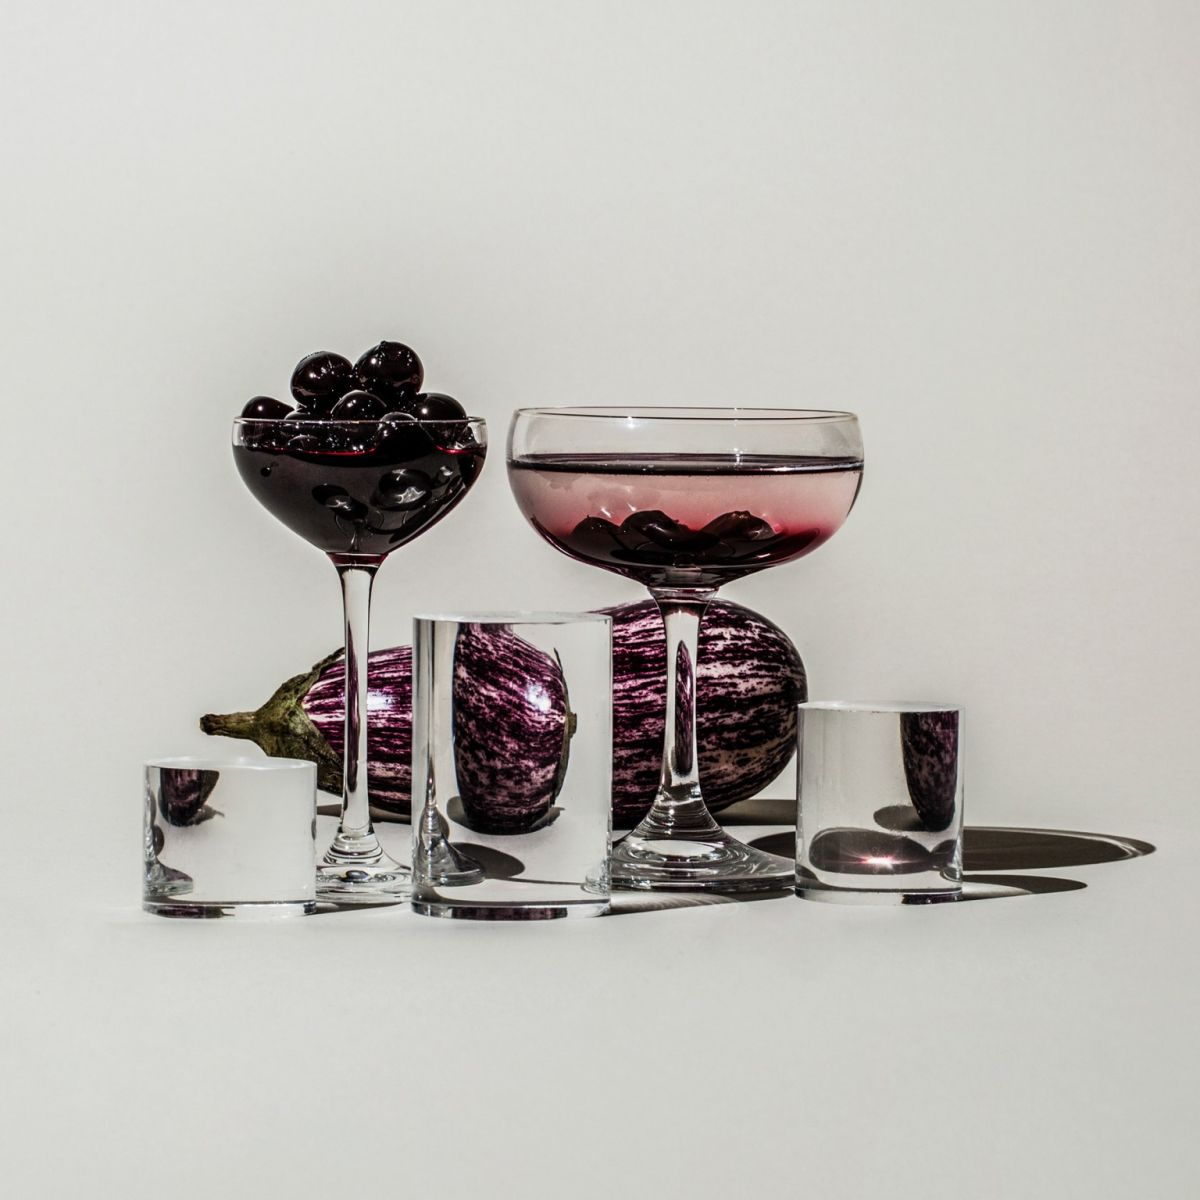 still life photography reflection